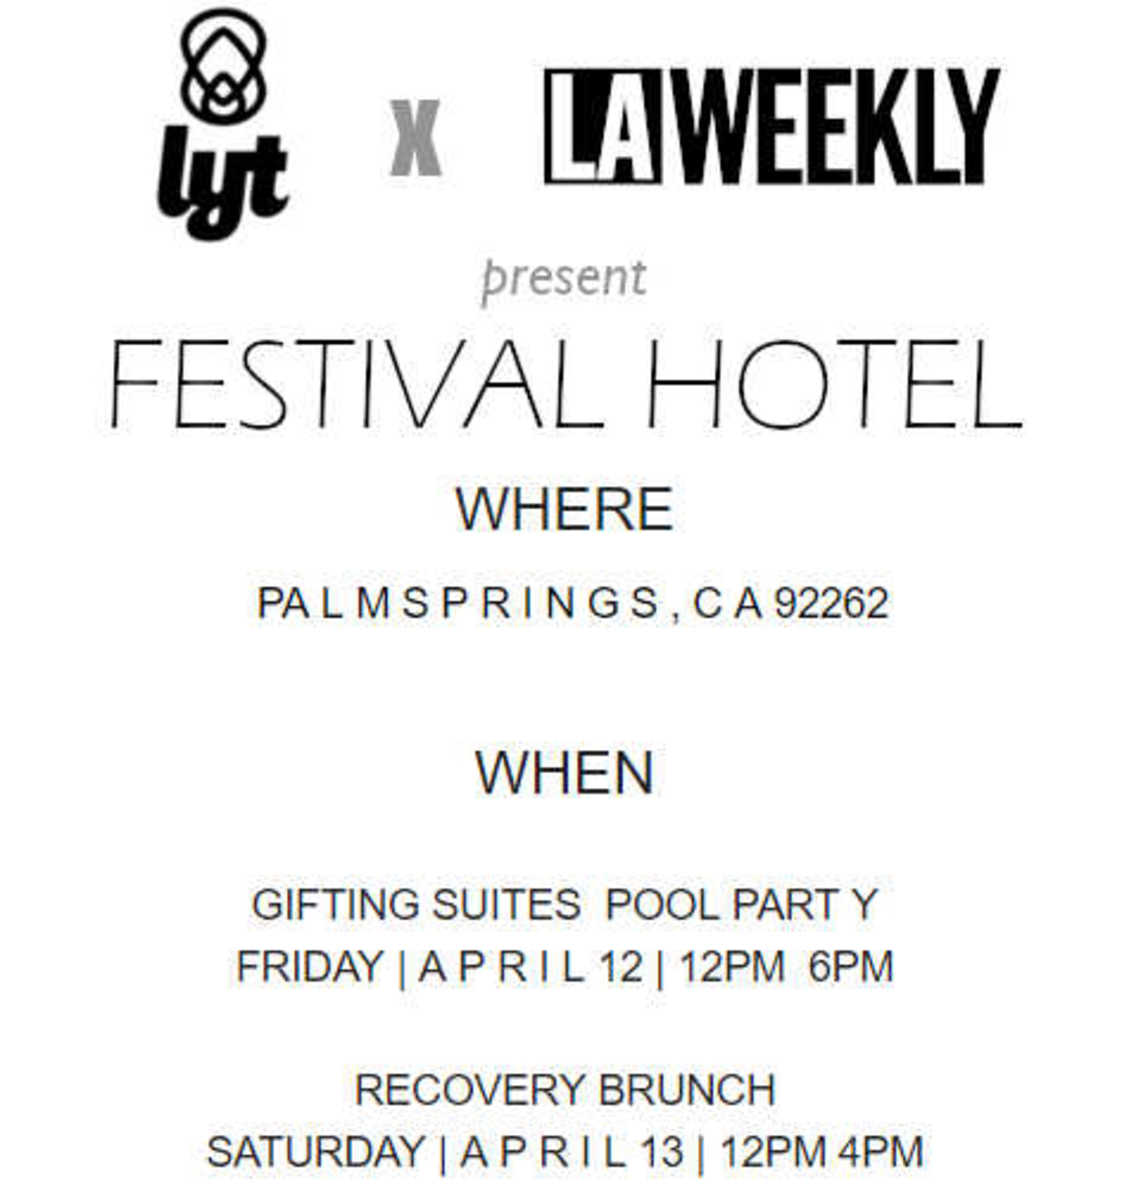 the festival hotel debuts this weekend with a ton of fun for the invited few...